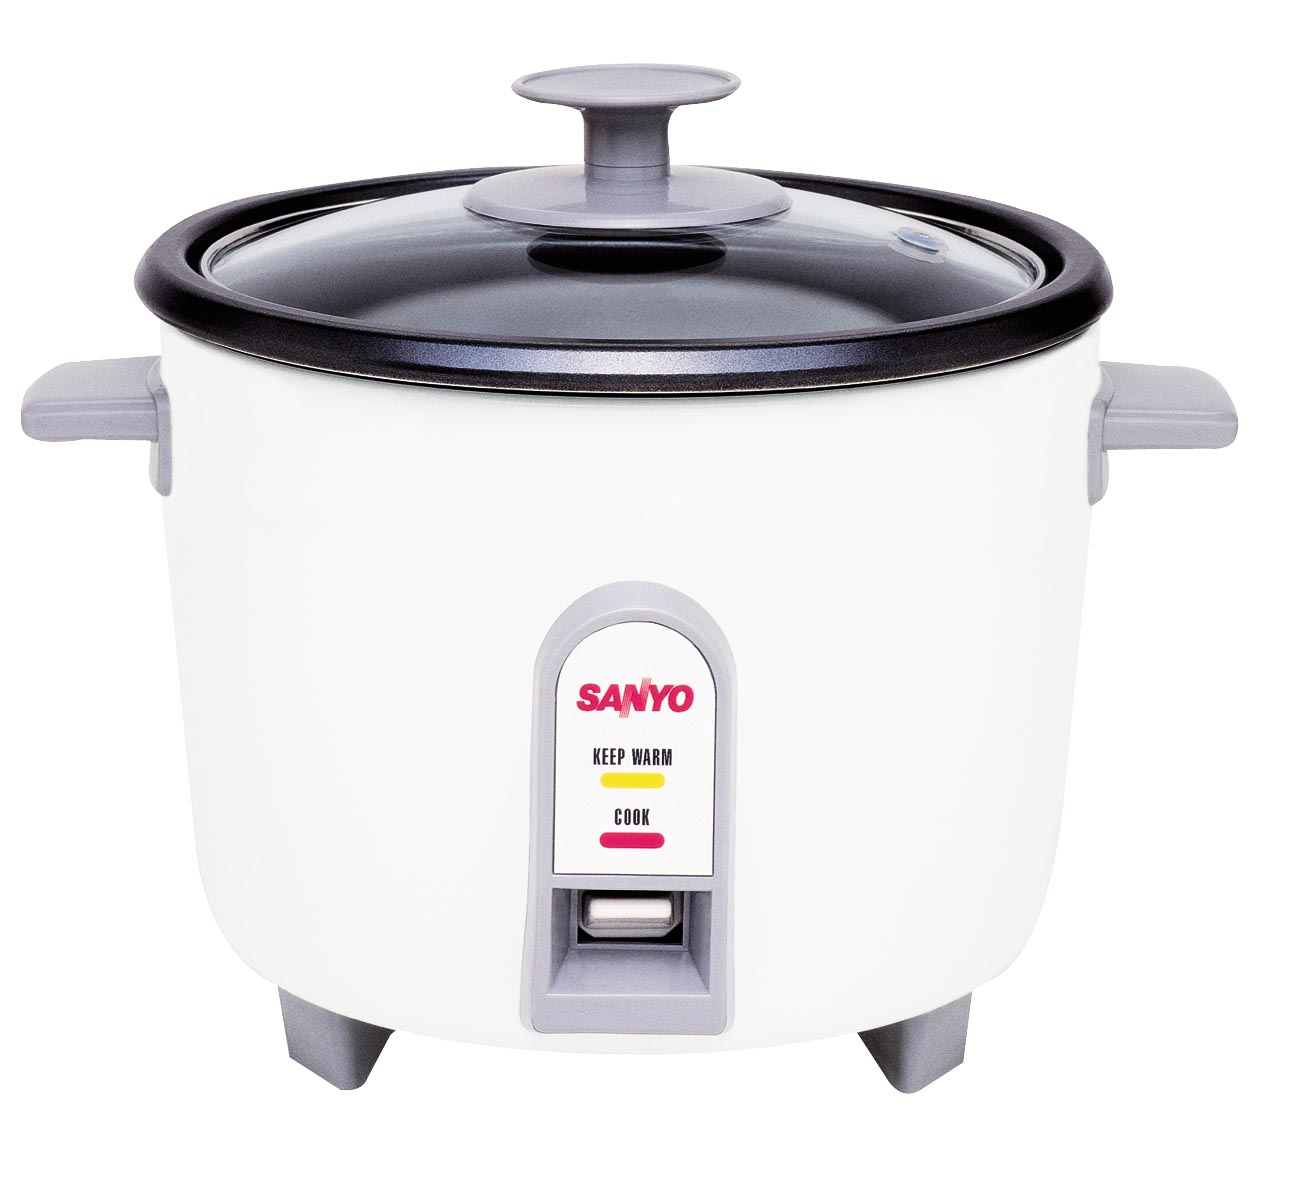 Sanyo ec505pot pot for model ec505